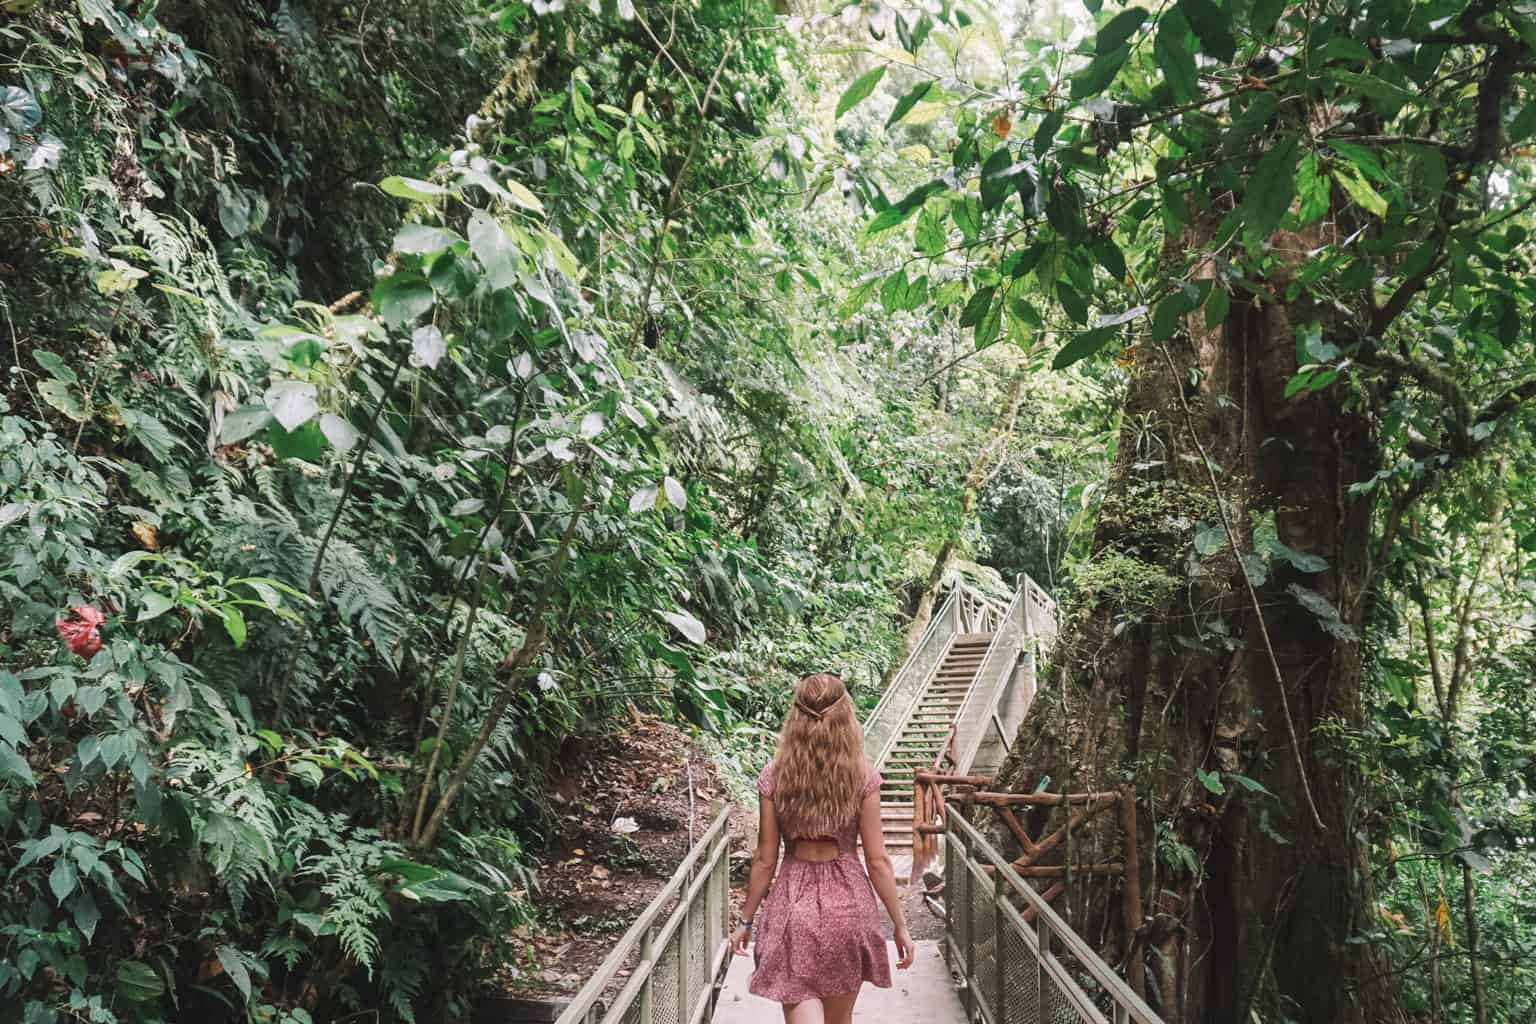 Climbing stairs on the way up from La Fortuna Waterfall in Arenal.